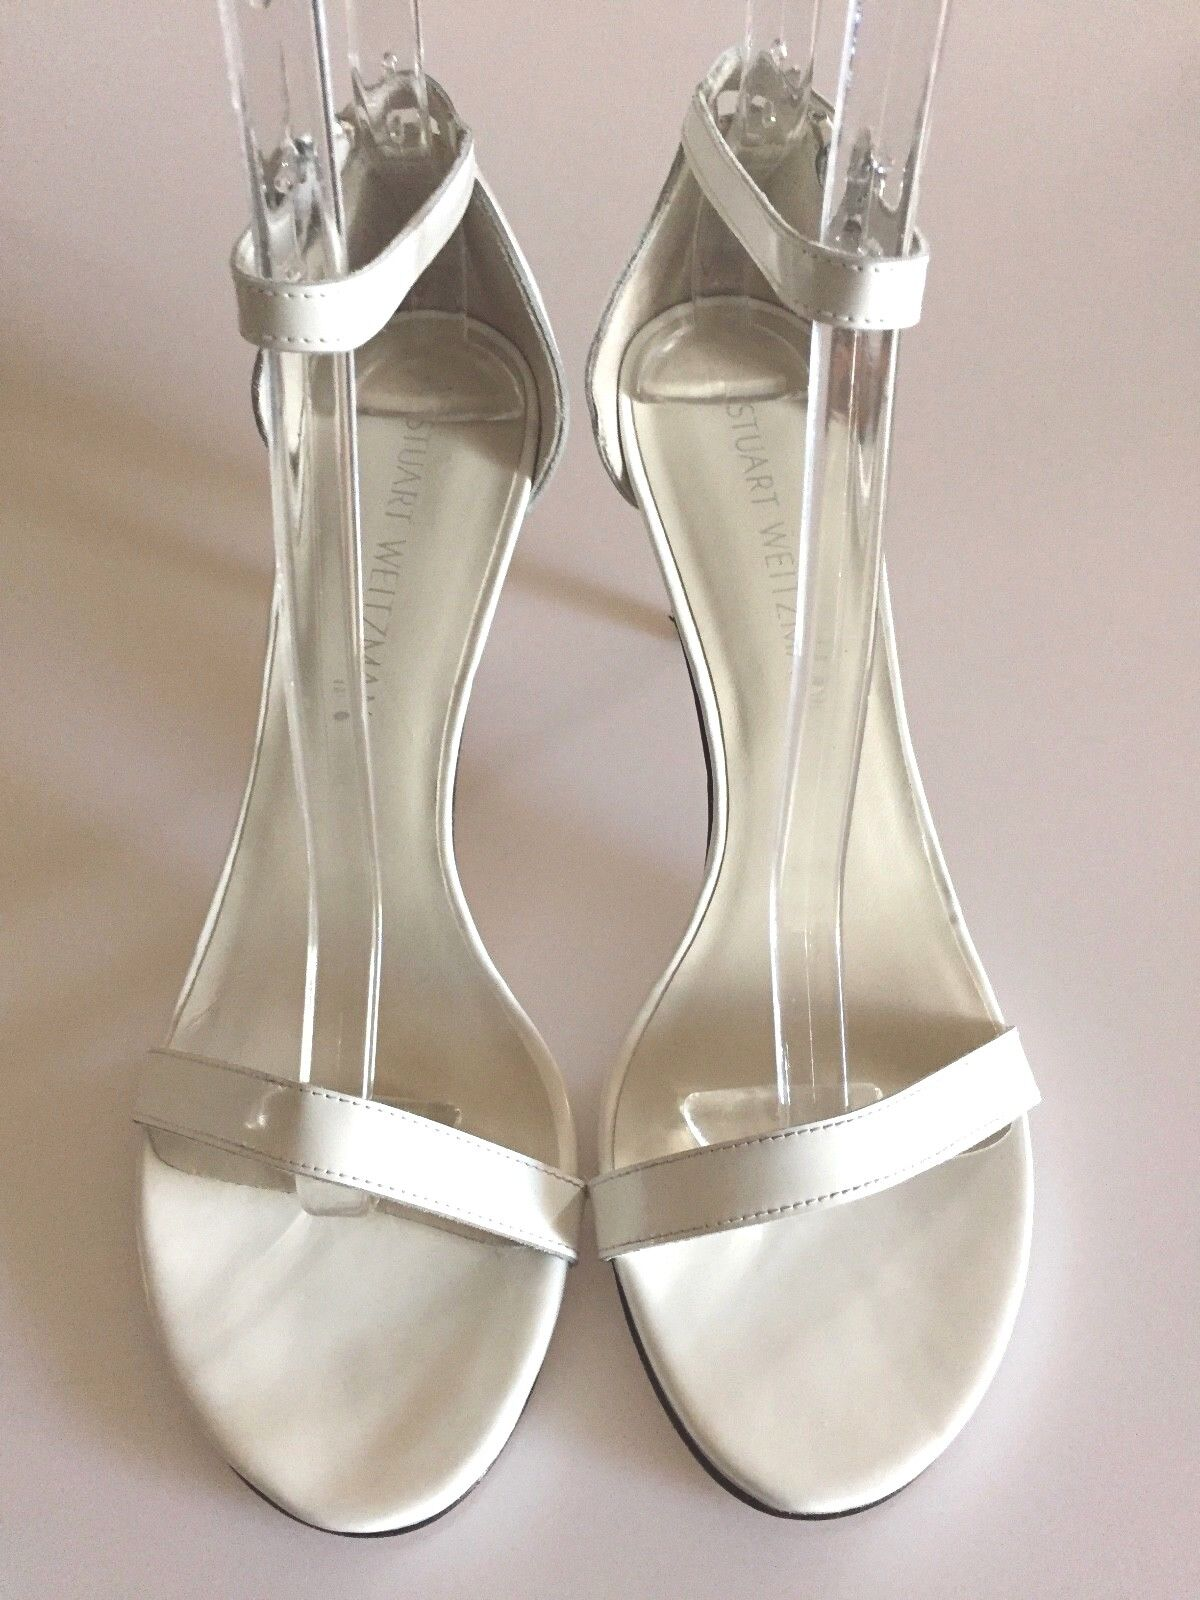 STUART WEITZMAN NearlyNude Ankle Strap White Nappa Leather Sandals size 9 M